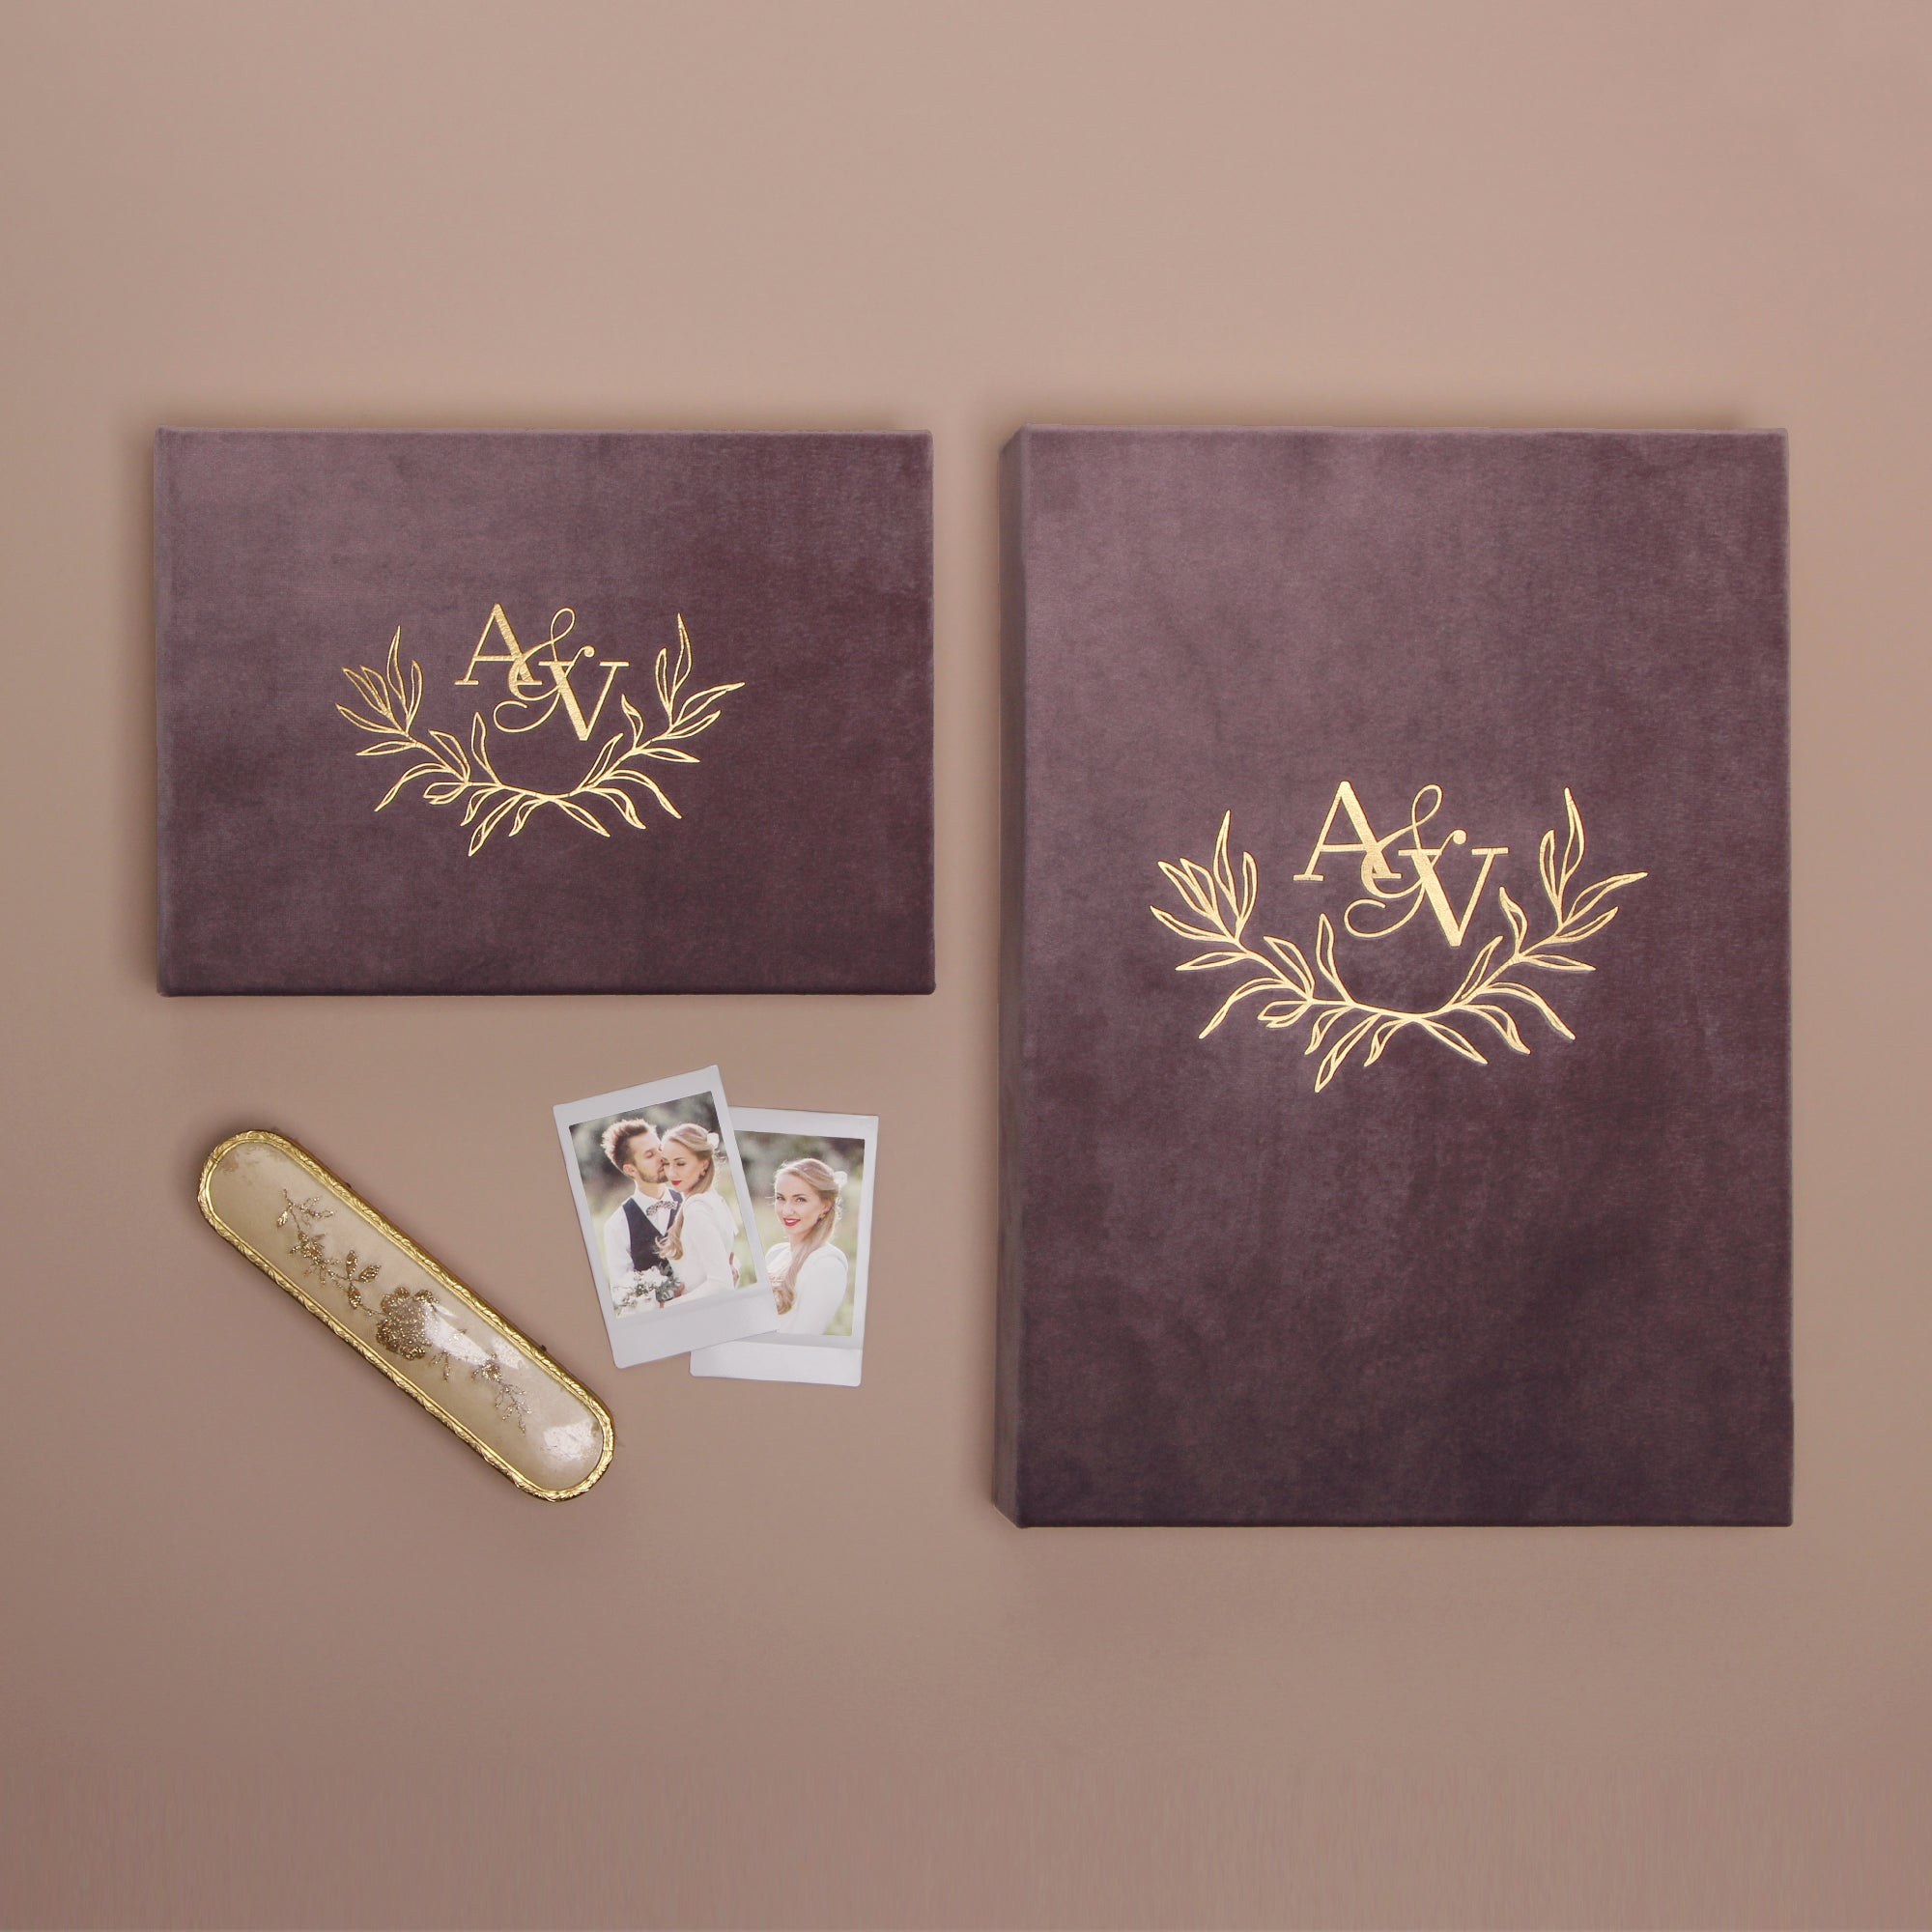 Dusty Plum Velour Instax Photo Guestbook Initials Wreath Gold Lettering, Personalized Wedding Album, Alternative Guestbook - by Liumy - Liumy